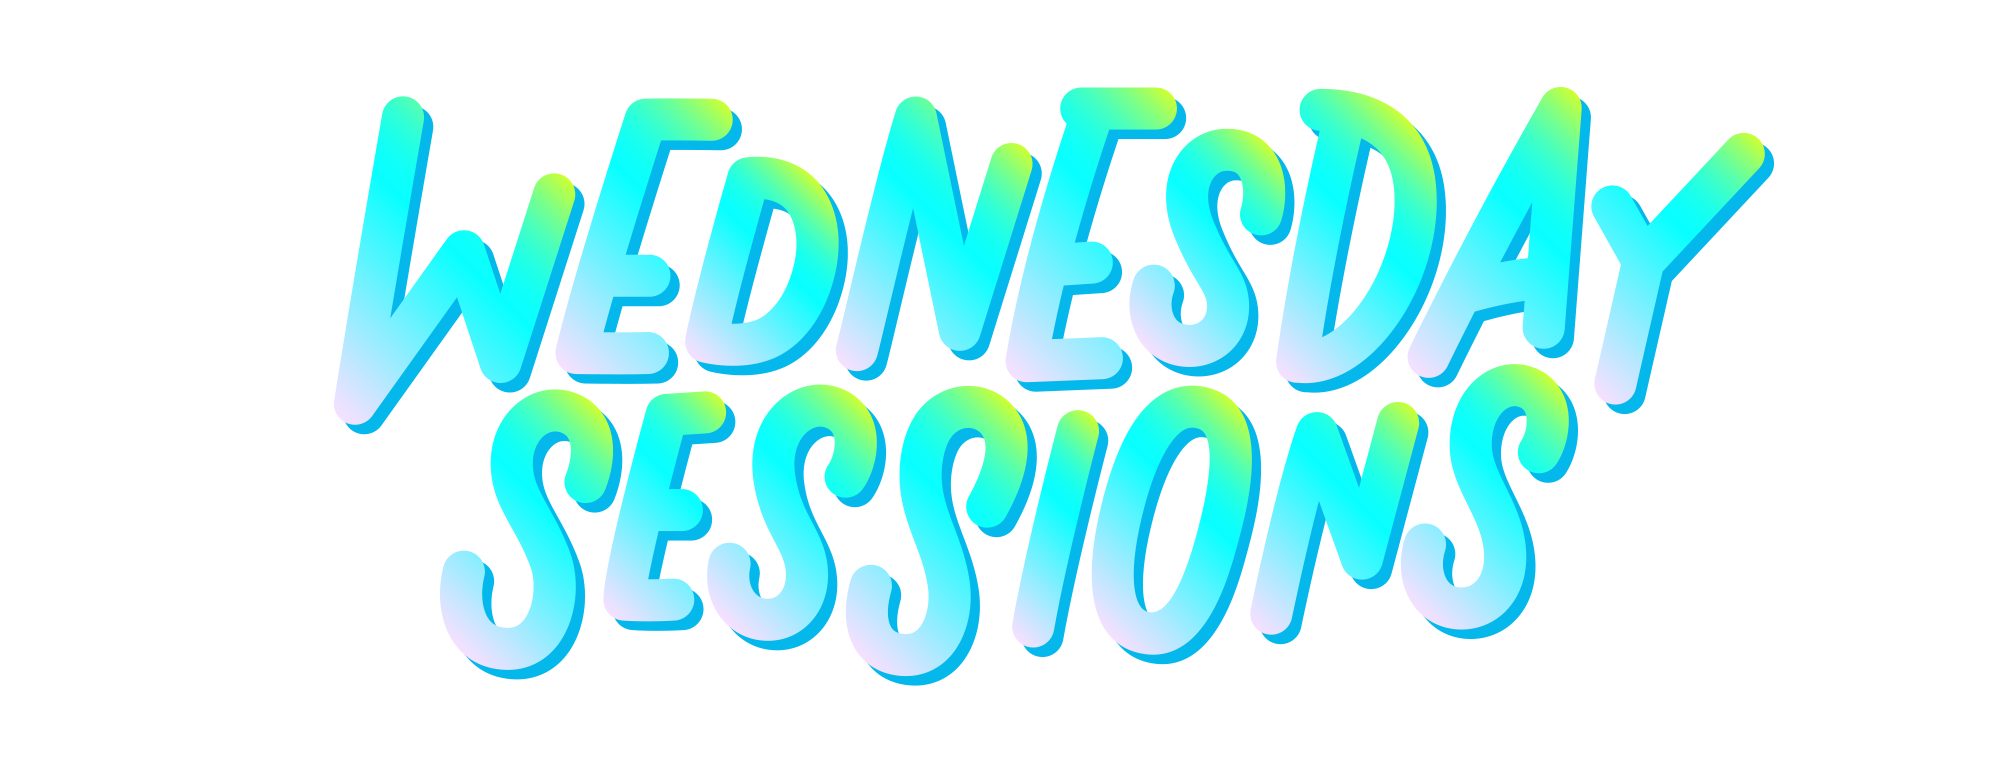 Wednesday Sessions